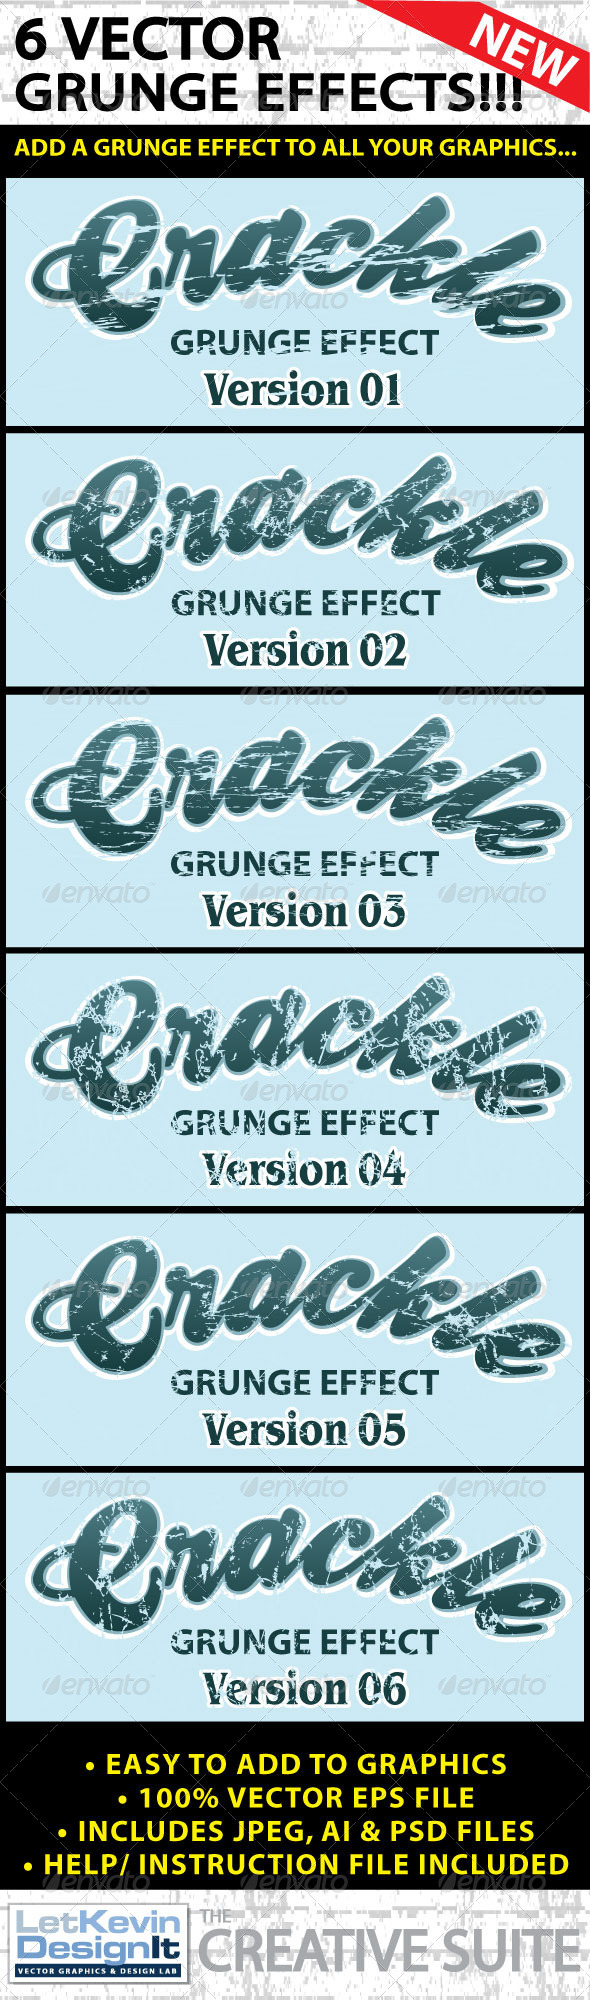 Vector Grunge Crackle Distressed Graphic Effect - Decorative Vectors